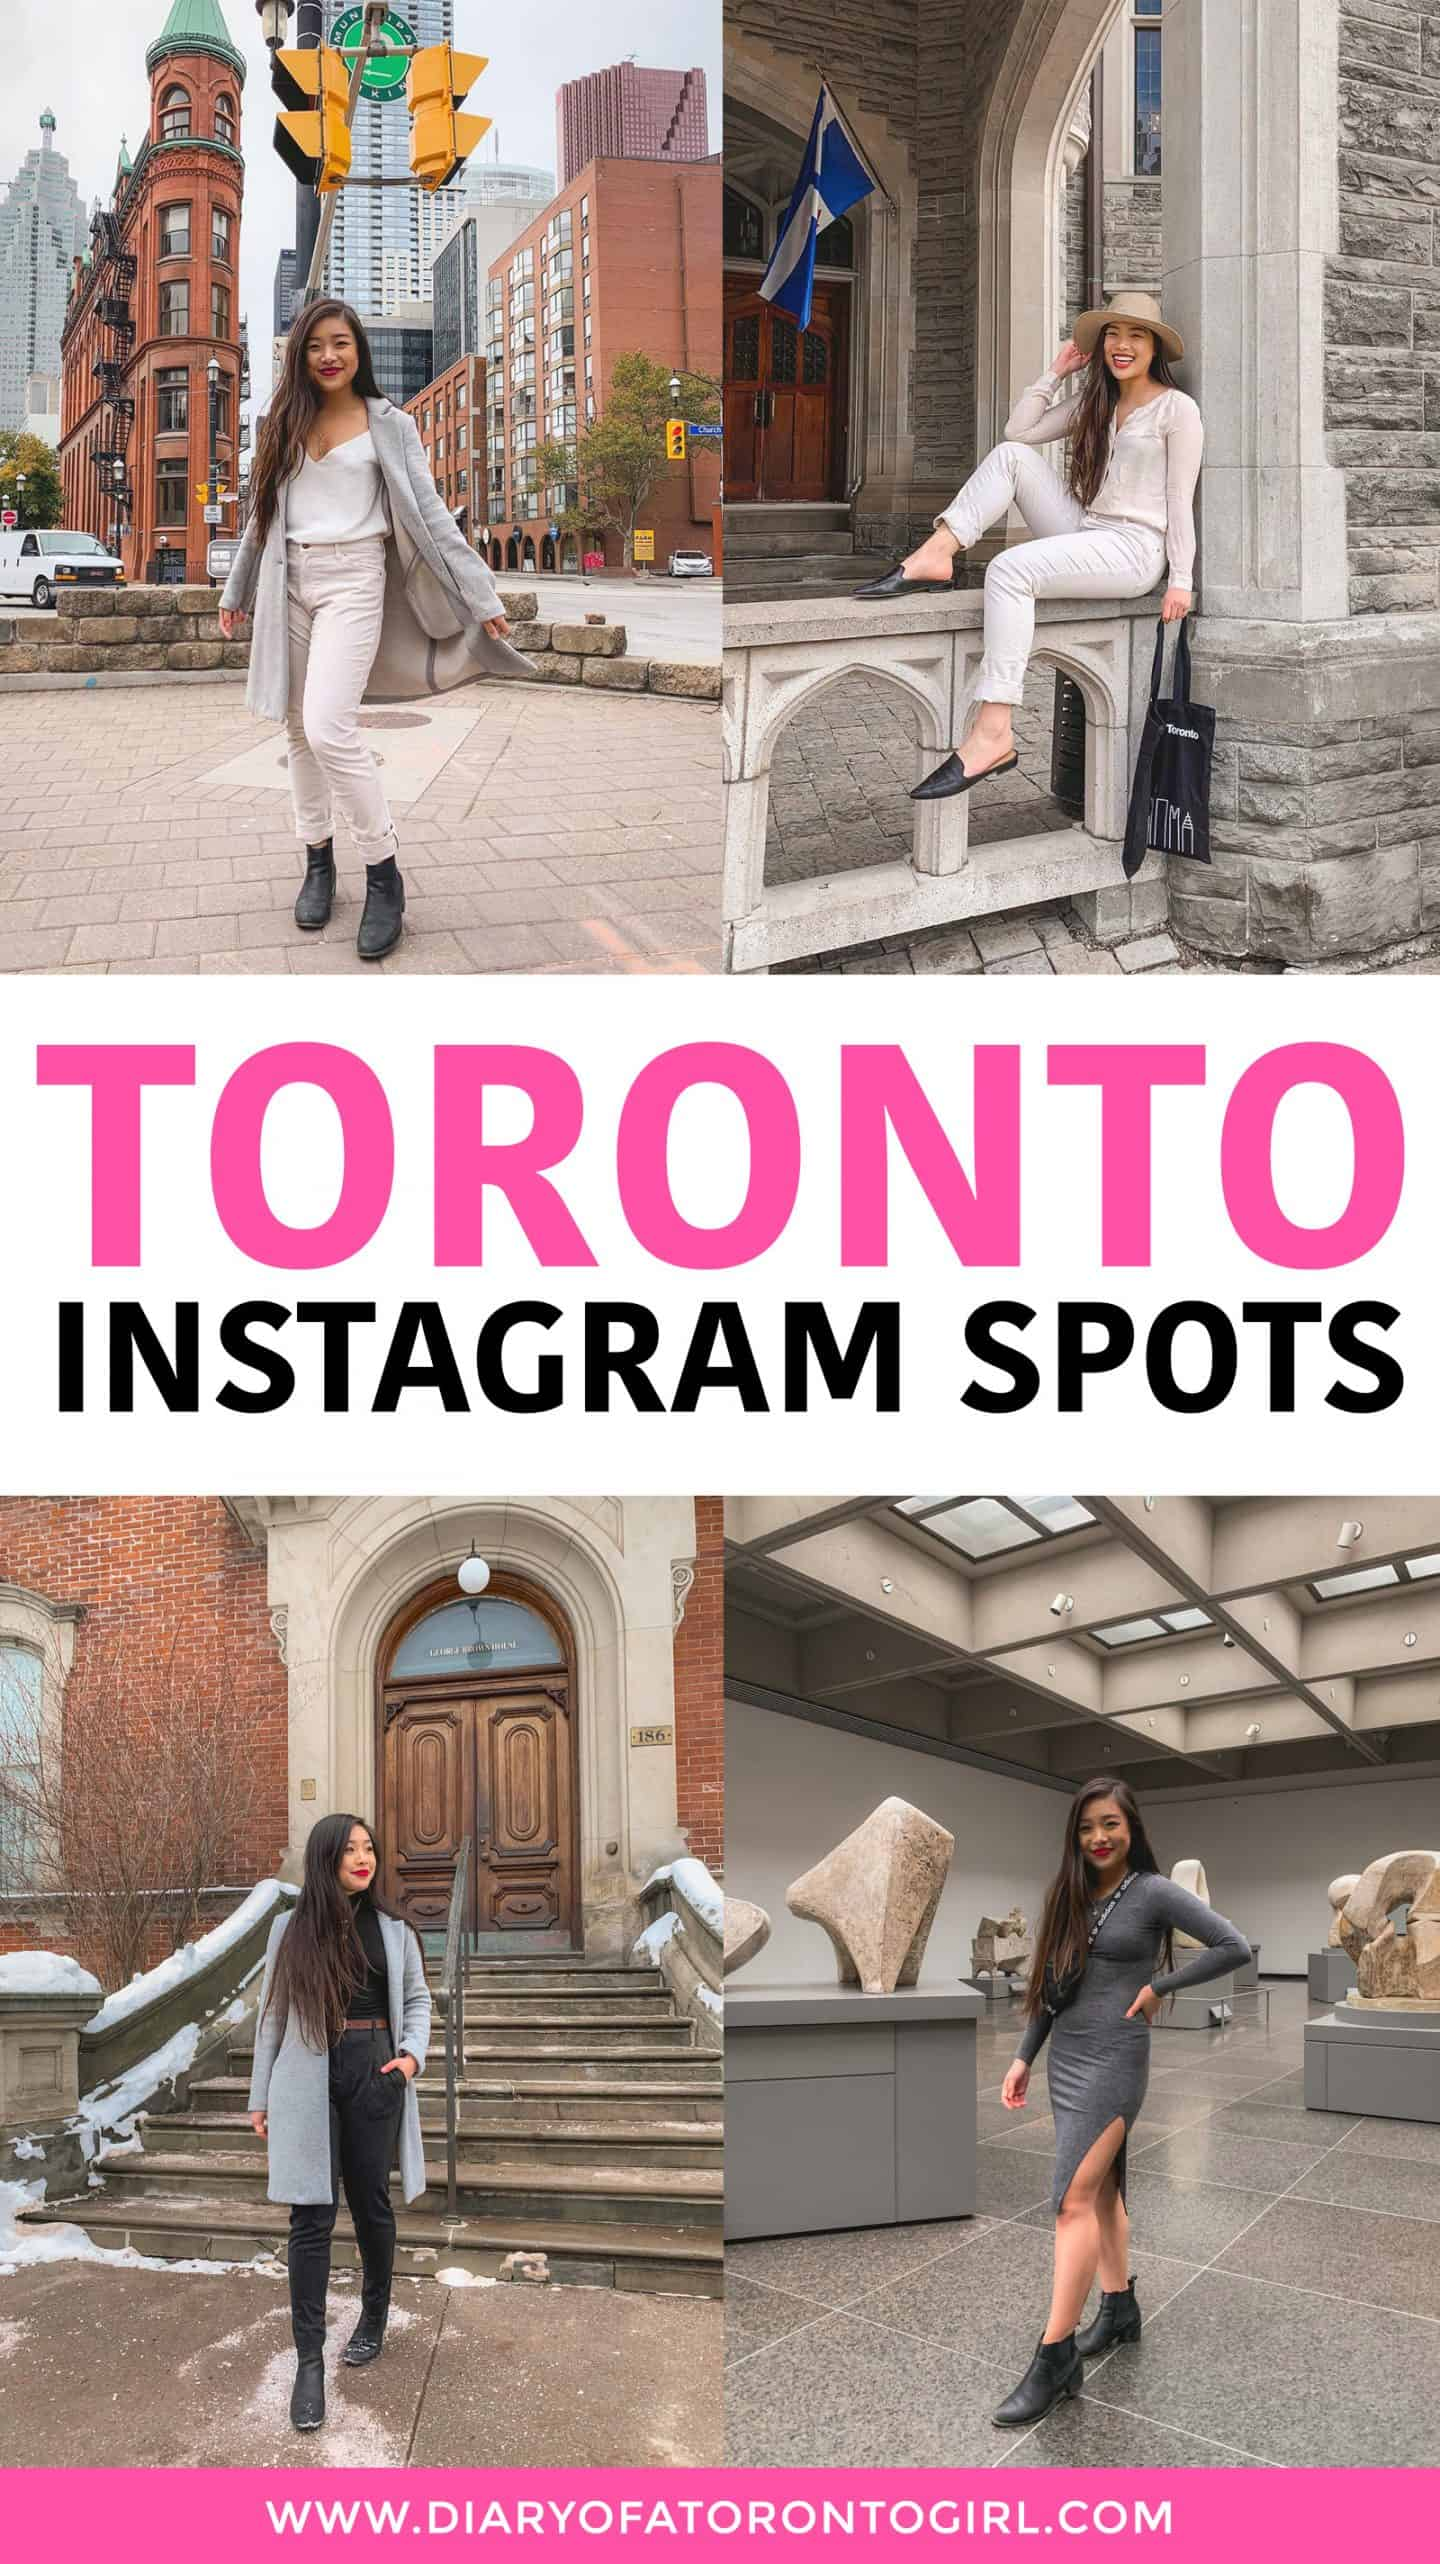 Looking to up your Instagram game? Here's a list of some of the cutest and most Instagram-worthy spots to visit in Toronto, Canada!